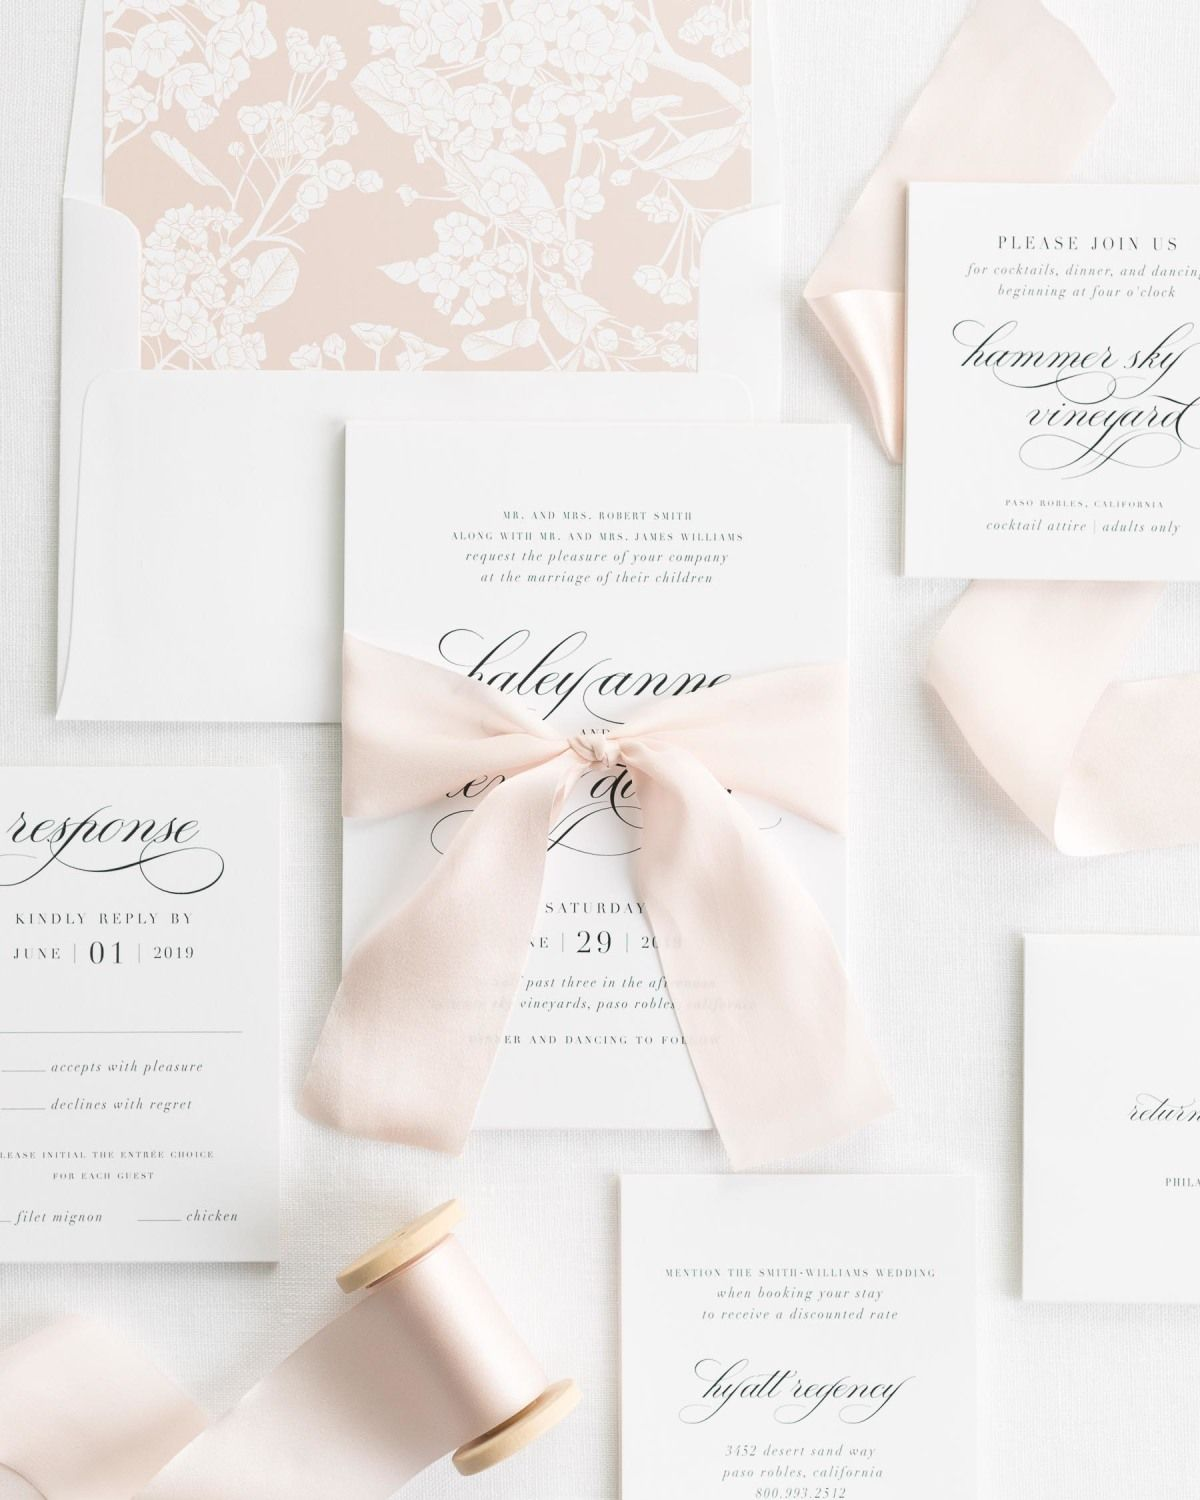 Complete Wedding Invitation Suite with Pale Pink Ribbon and Enclosures